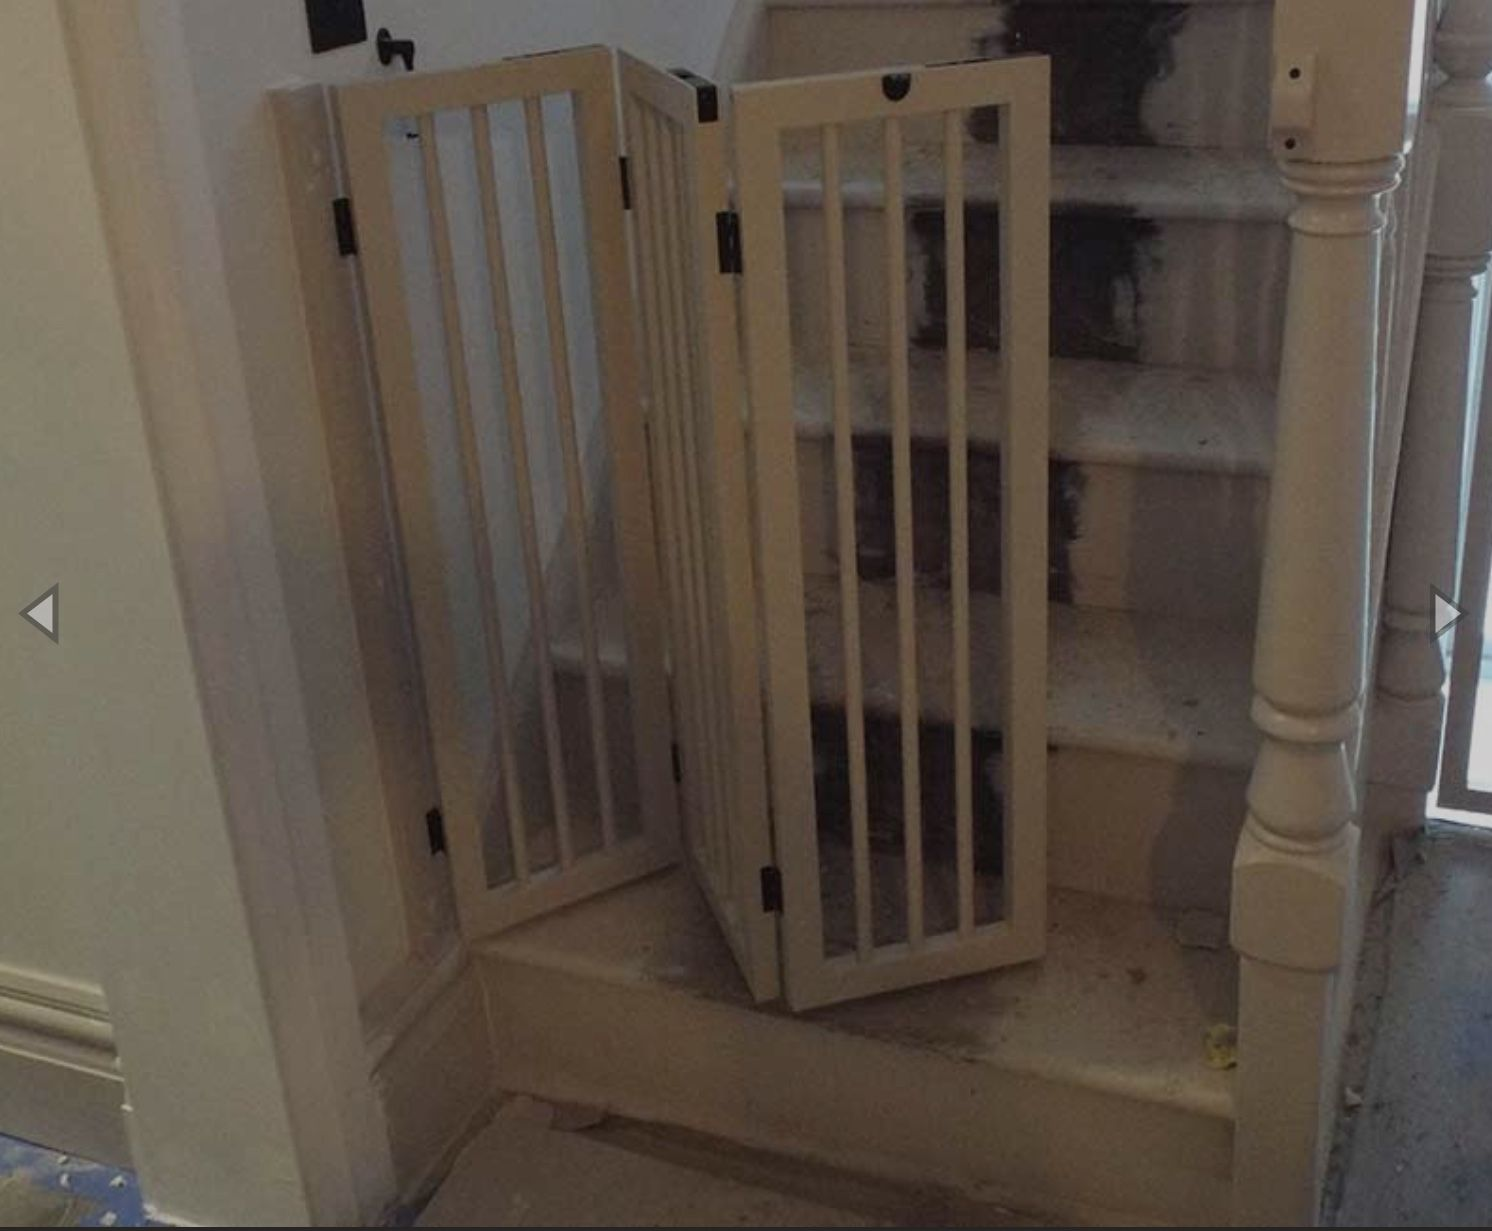 Pin by Kimberly Chumlea on baby in 2020 Diy dog gate